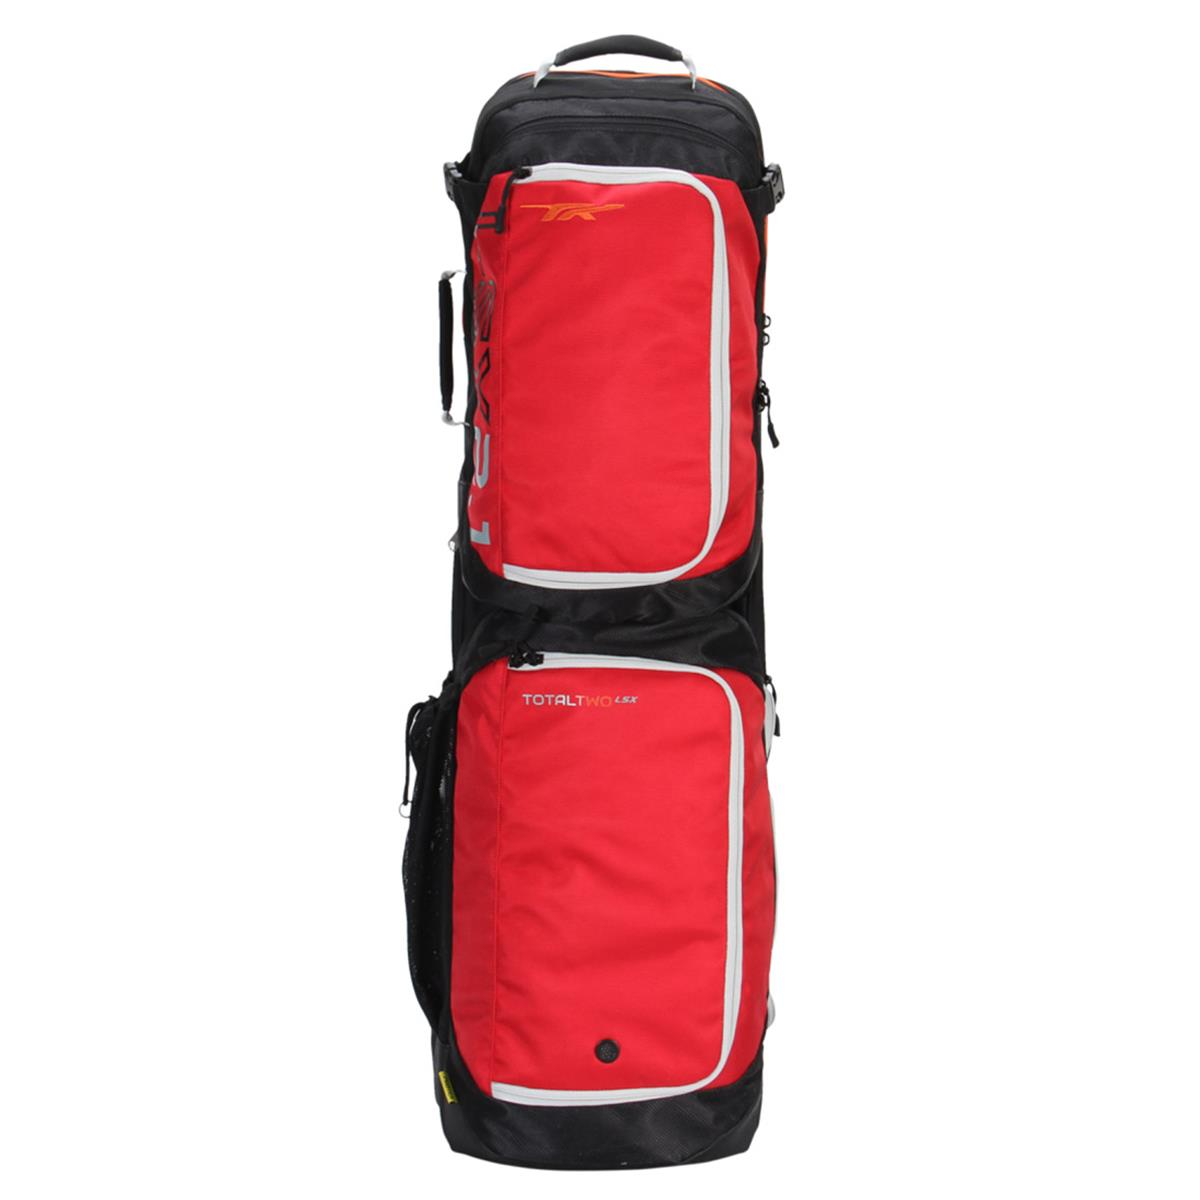 c444f1c9a2c7 TK LSX 2.1 Hockey Stick Bag with Backpack (Red)